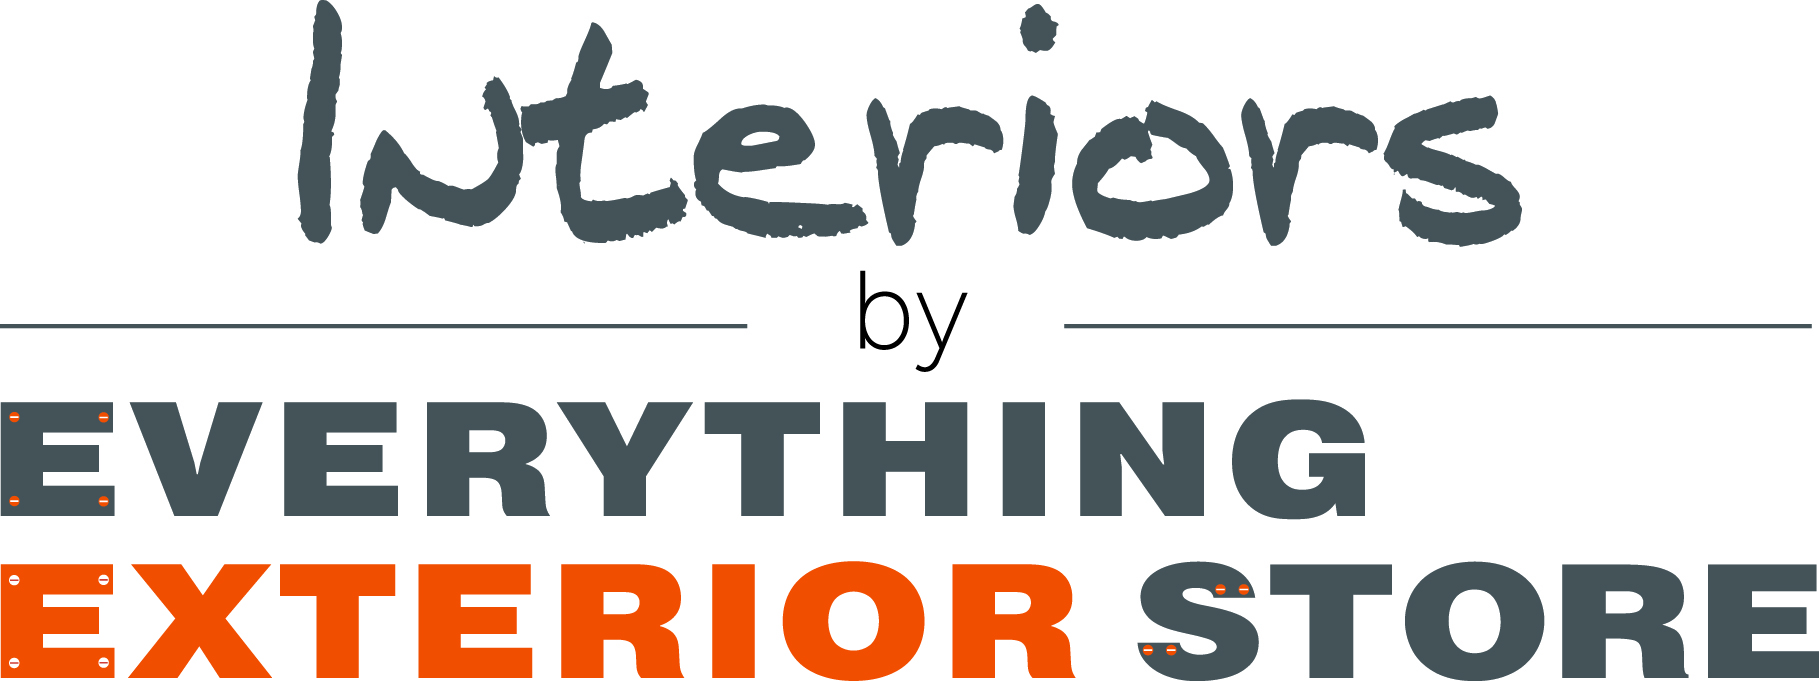 interiors by everything exterior logo